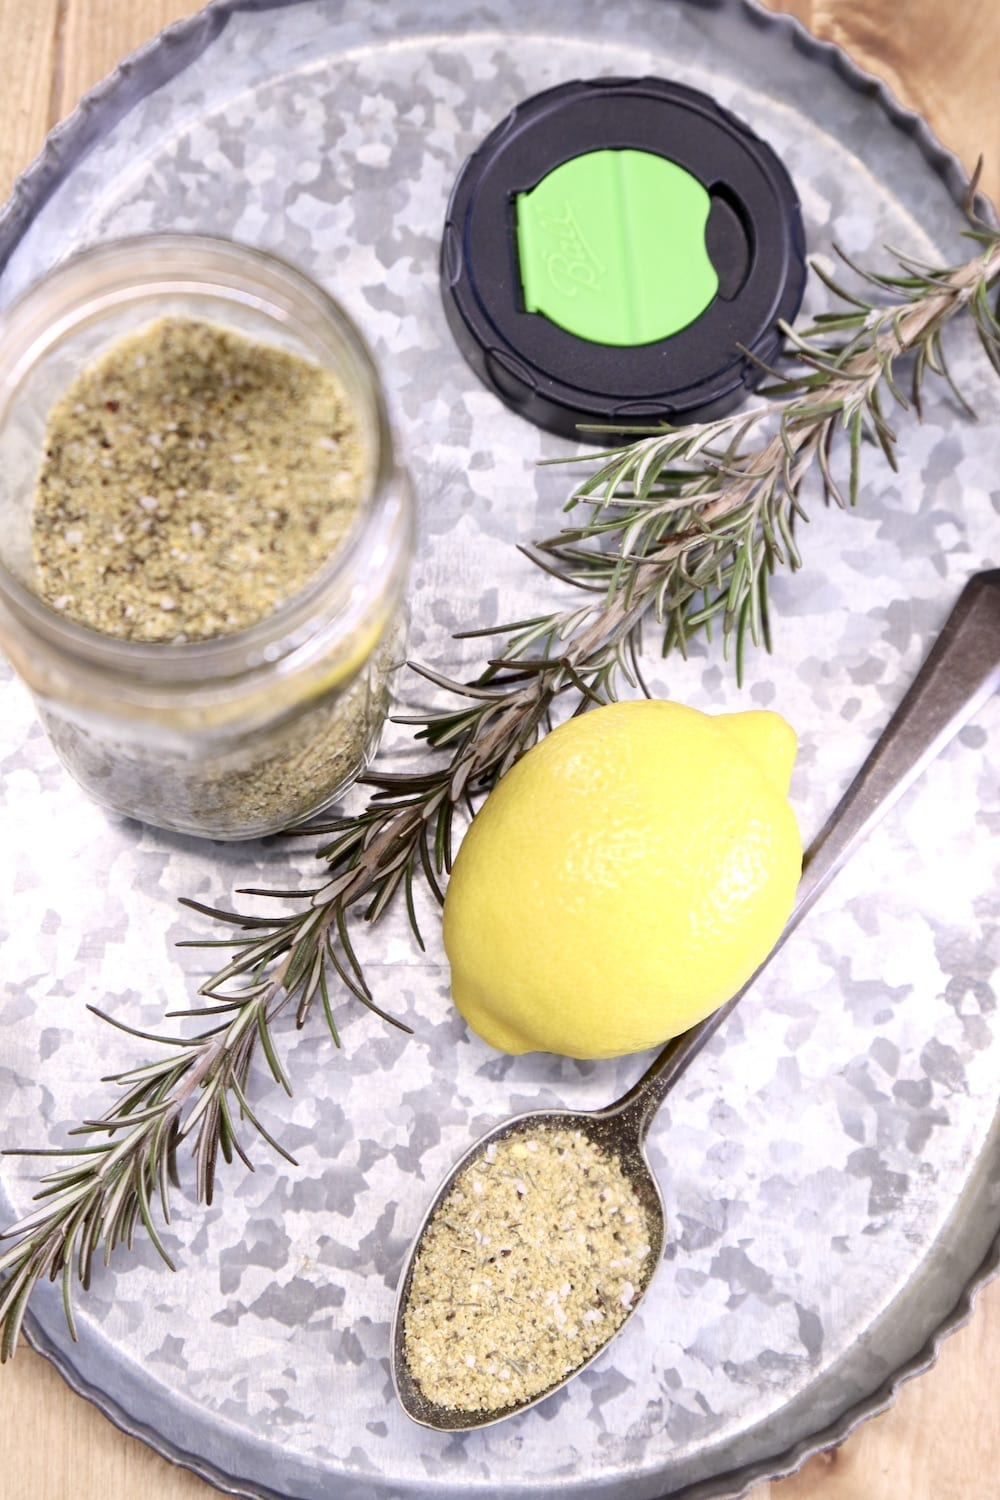 overhead of tray with lemon and rosemary dry rub. Whole lemon, jar of spices and sprig of rosemary